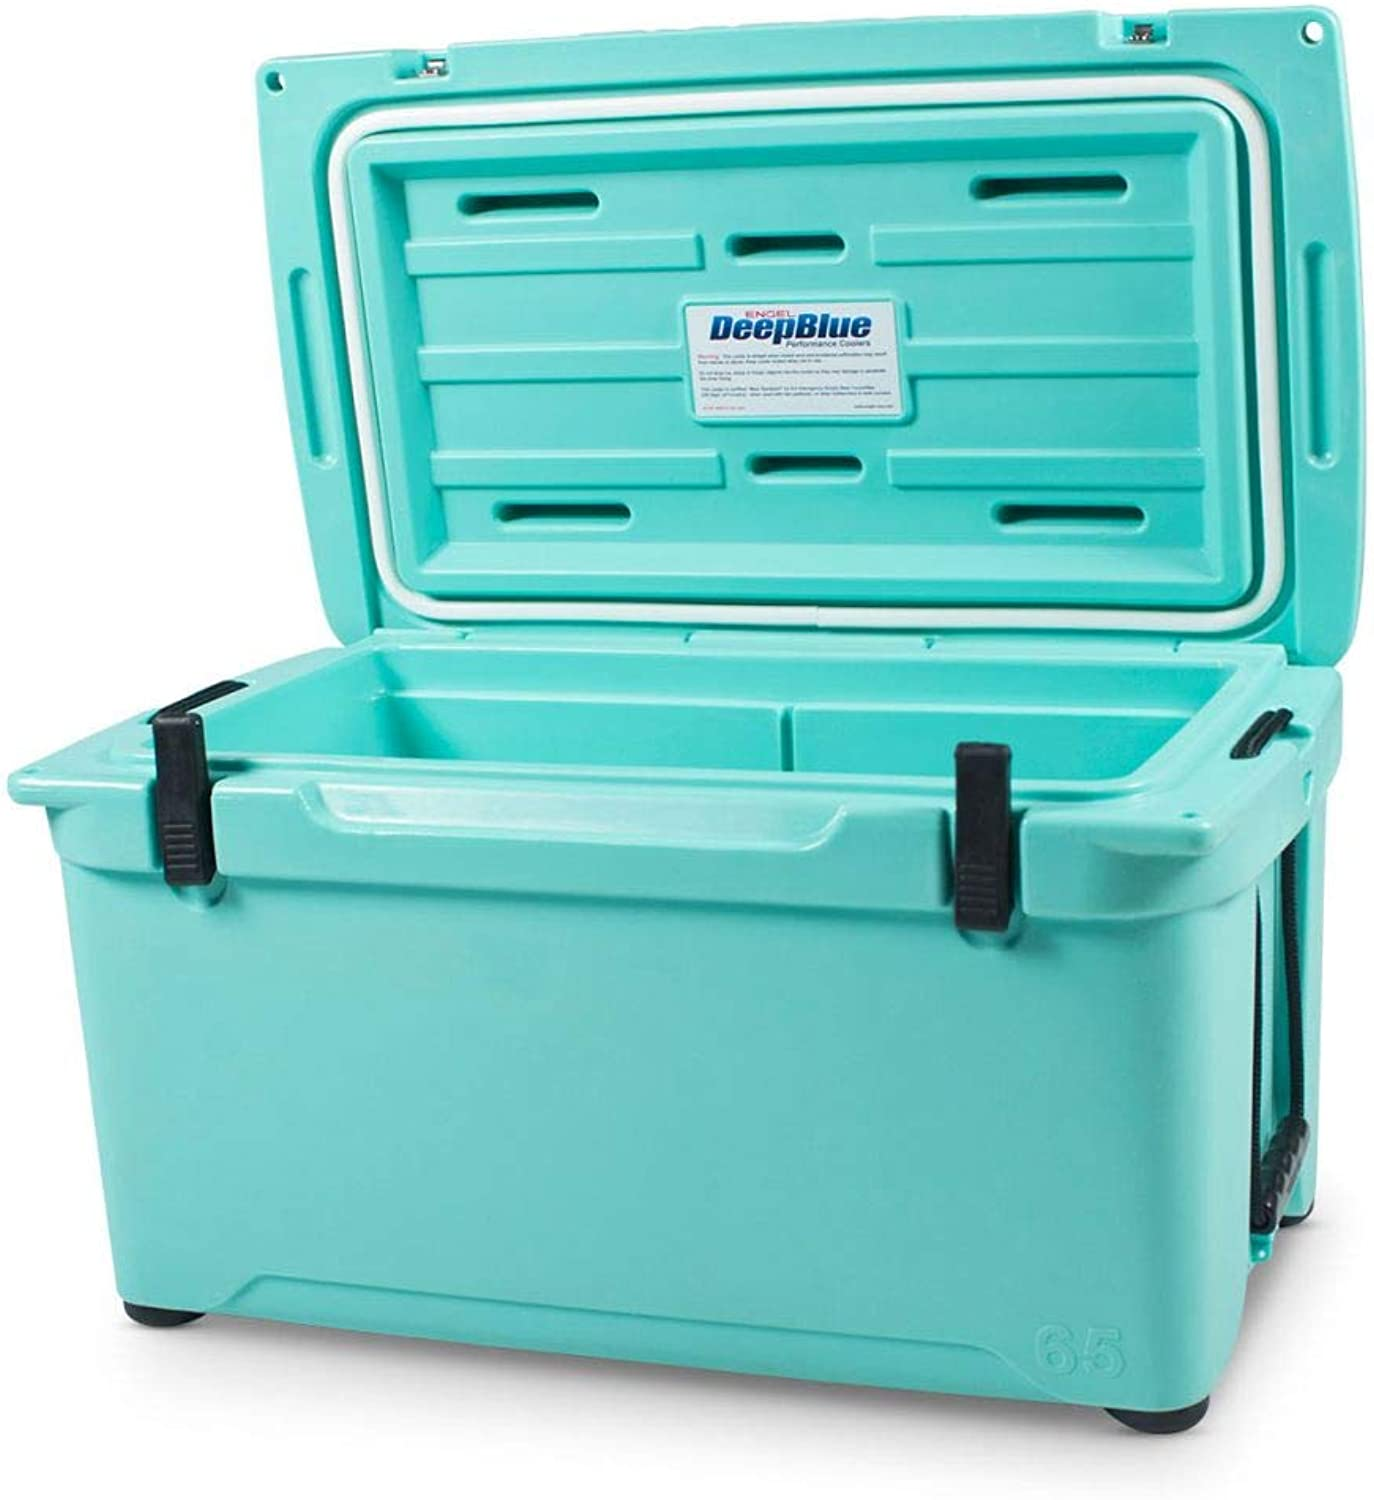 Engel 65 High Performance 14.5 Gallon 70 Can redo Molded Ice Cooler, Seafoam